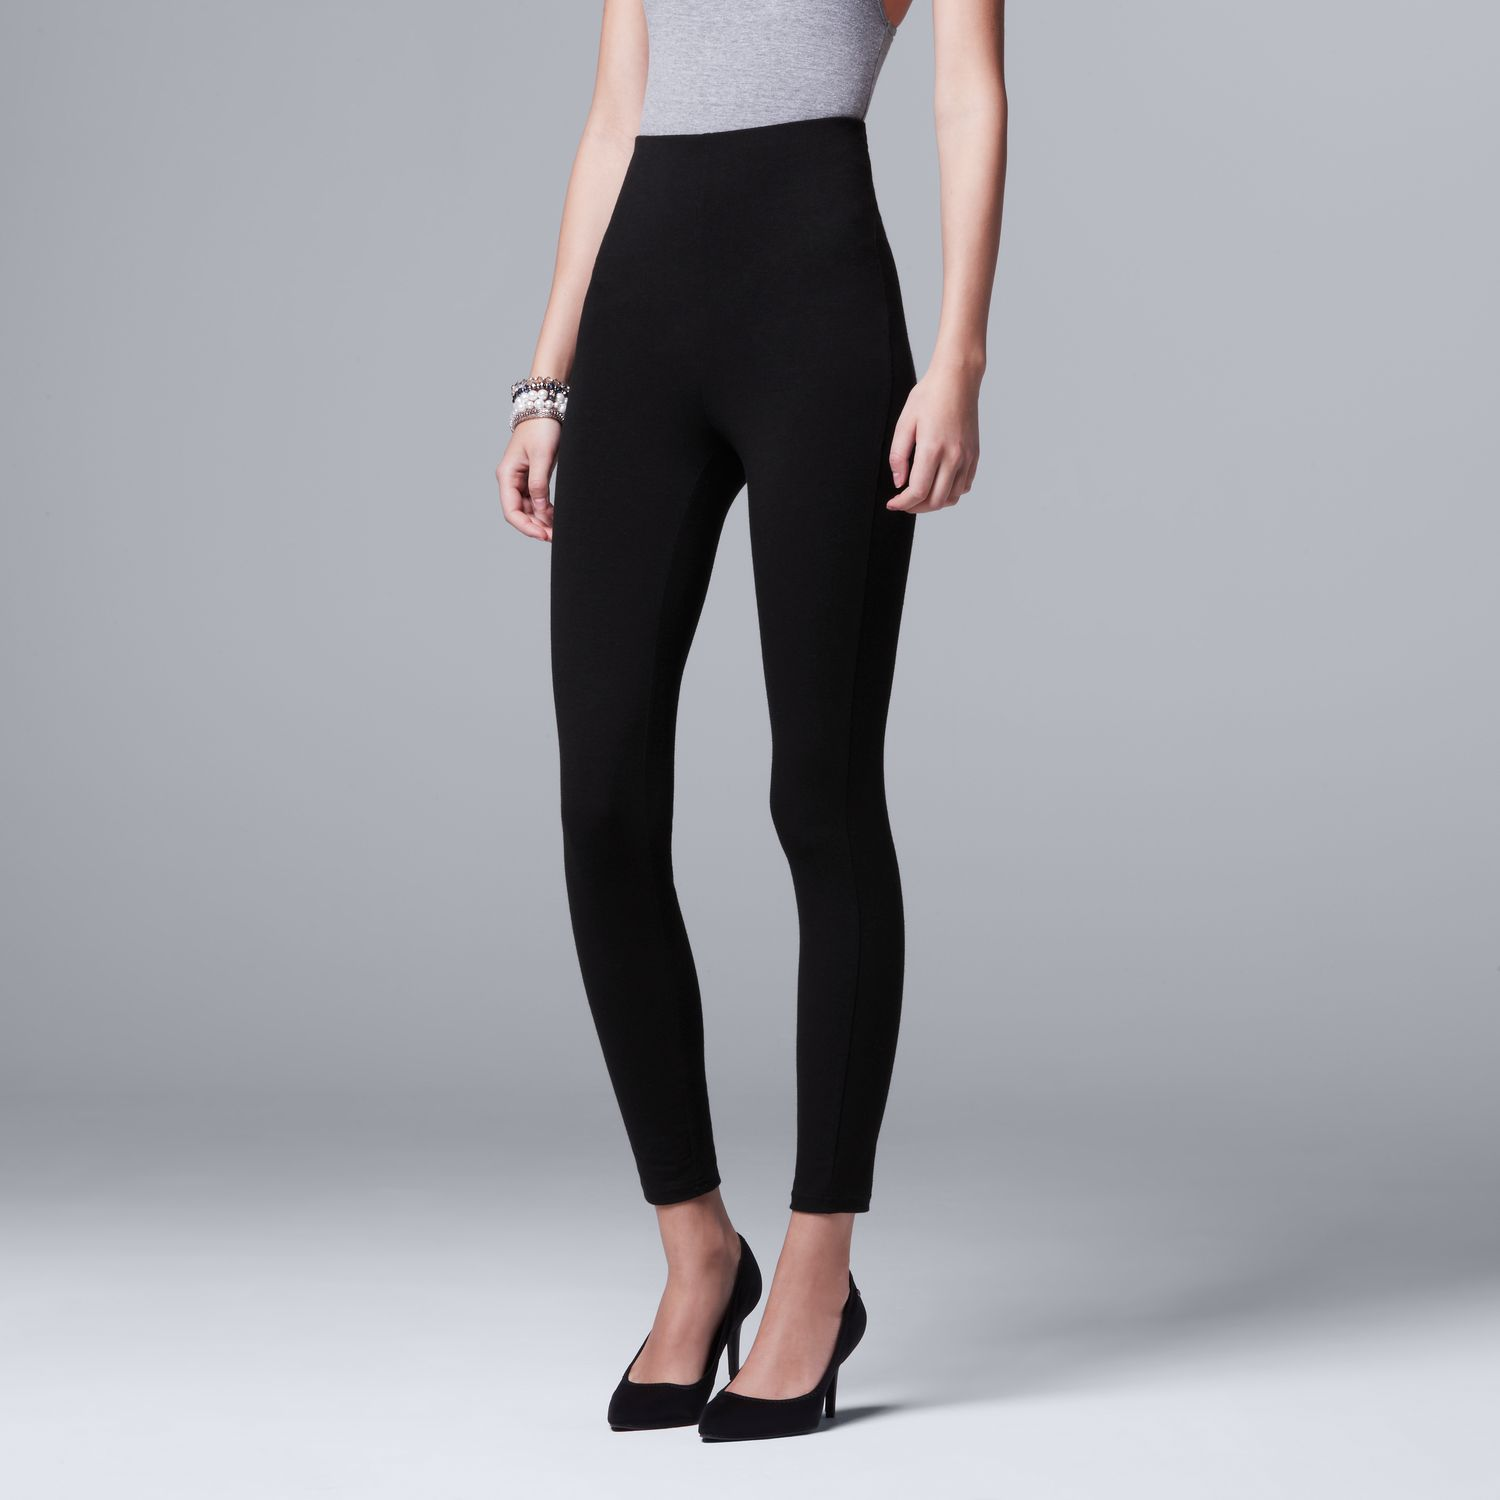 648cee40e7a Women s Simply Vera Vera Wang High-Waisted Shaping Leggings